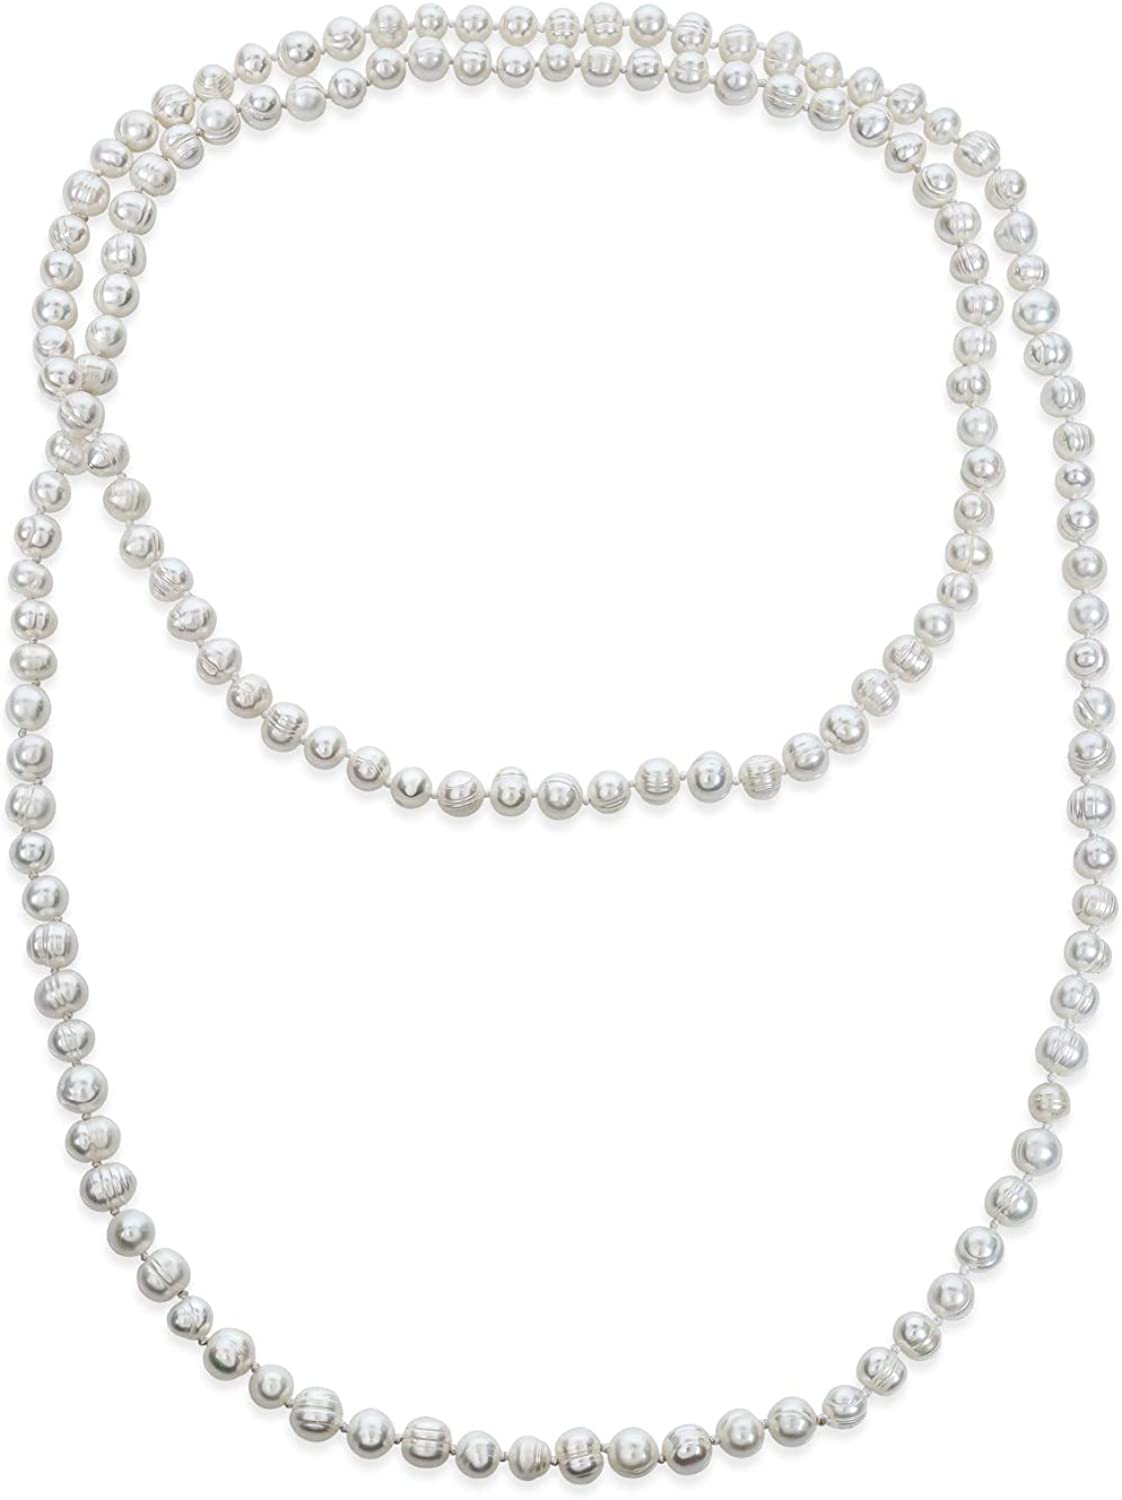 Bling Jewelry Round Endless Warp Layer Long Hand Knotted White Freshwater Cultured Pearl Rope Strand Necklace for Women 36 52 80 Inch